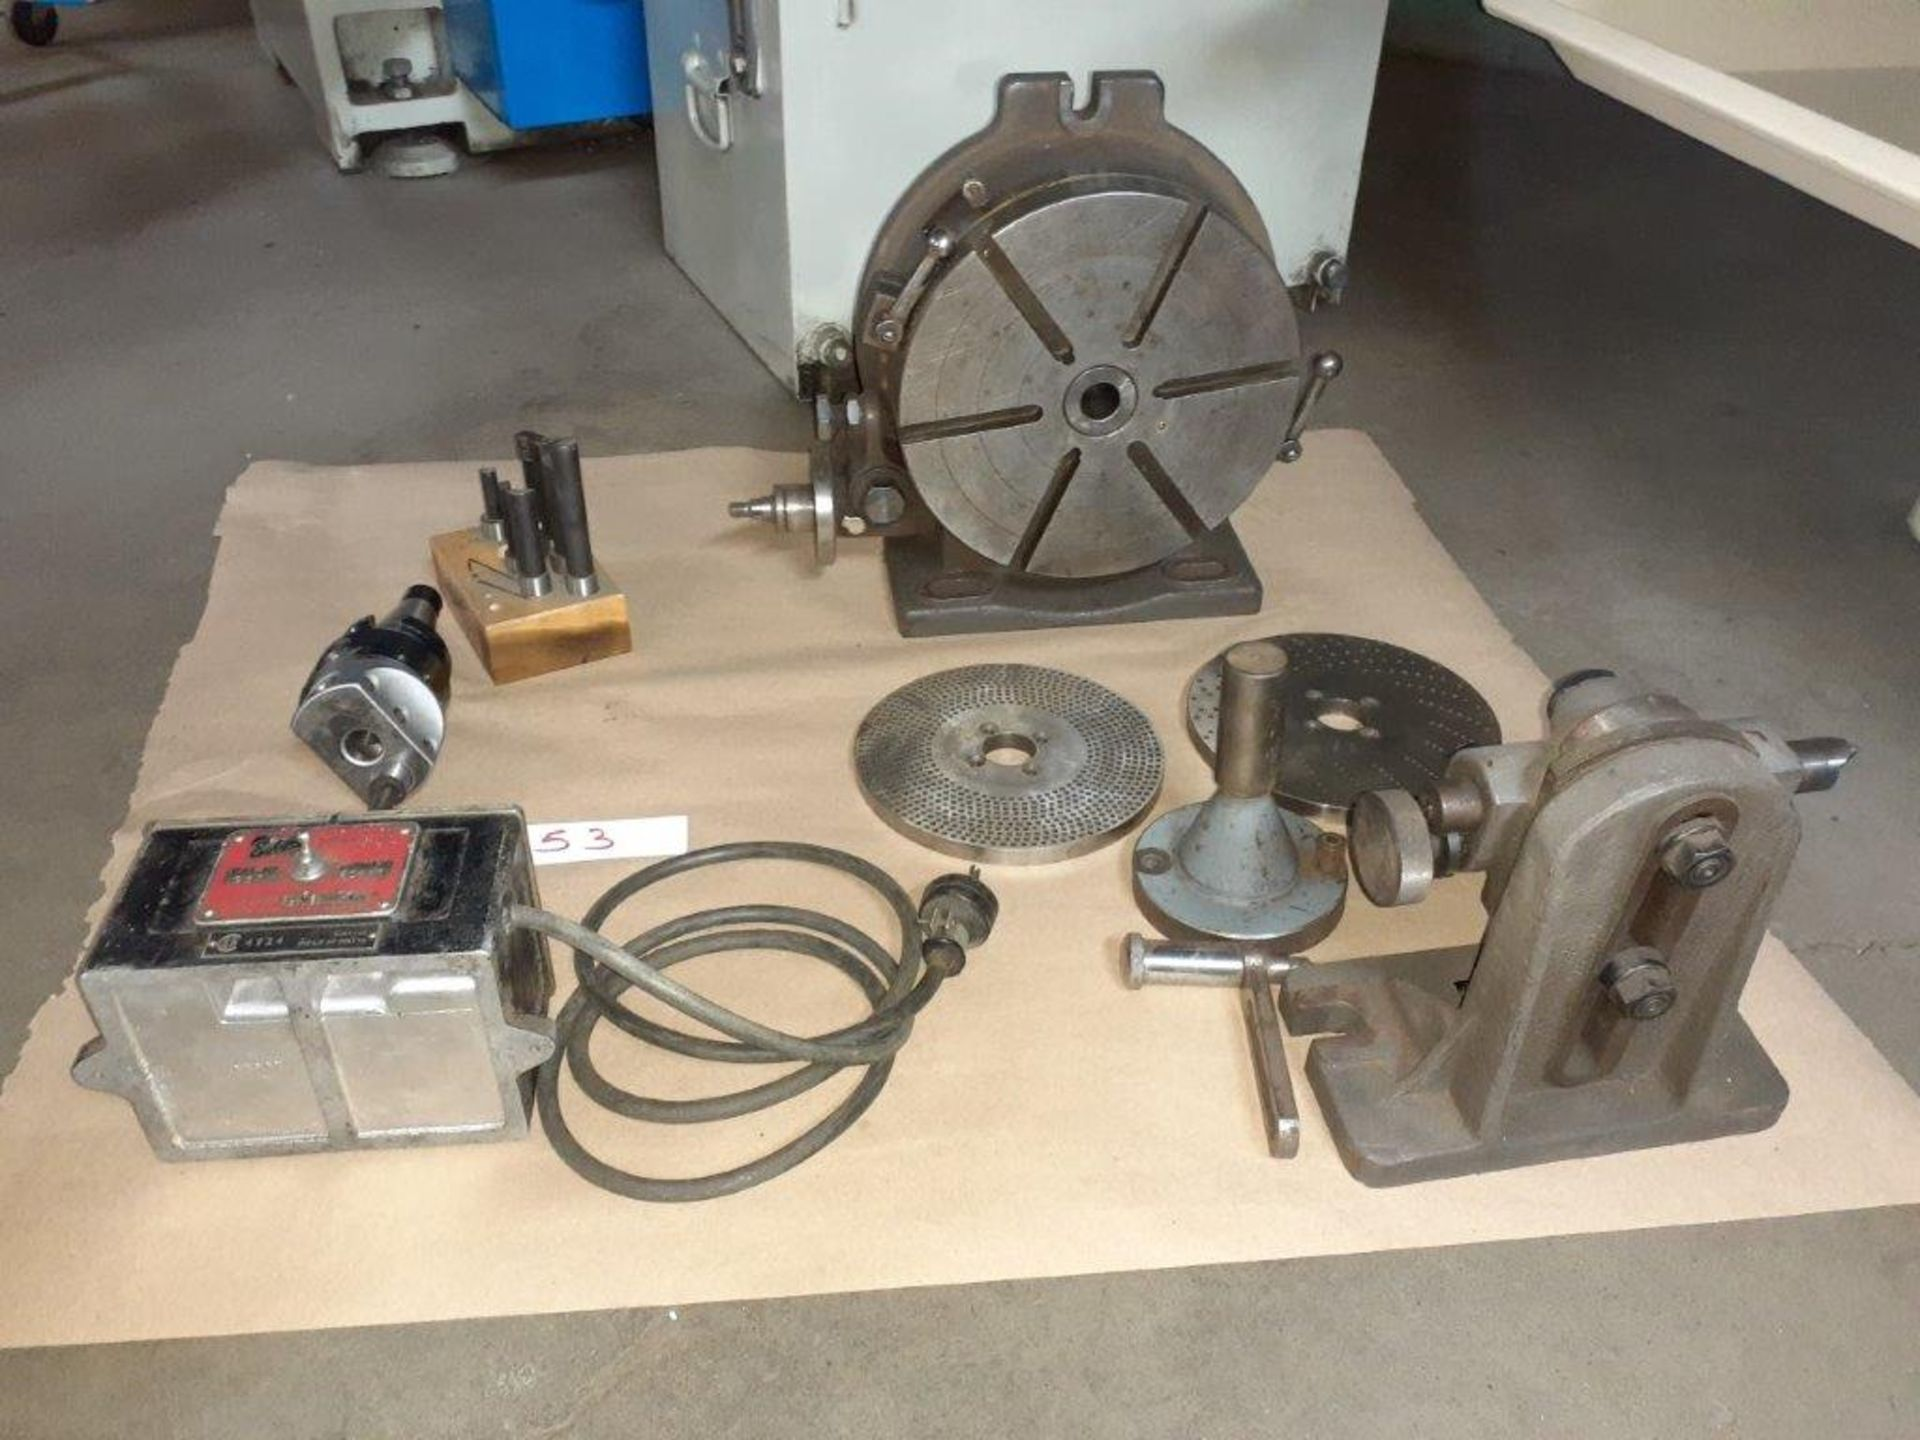 LOT: Assorted Milling Machine Accessories: Dividing Head, Boring Head, (8) Milling Knives, - Image 2 of 2